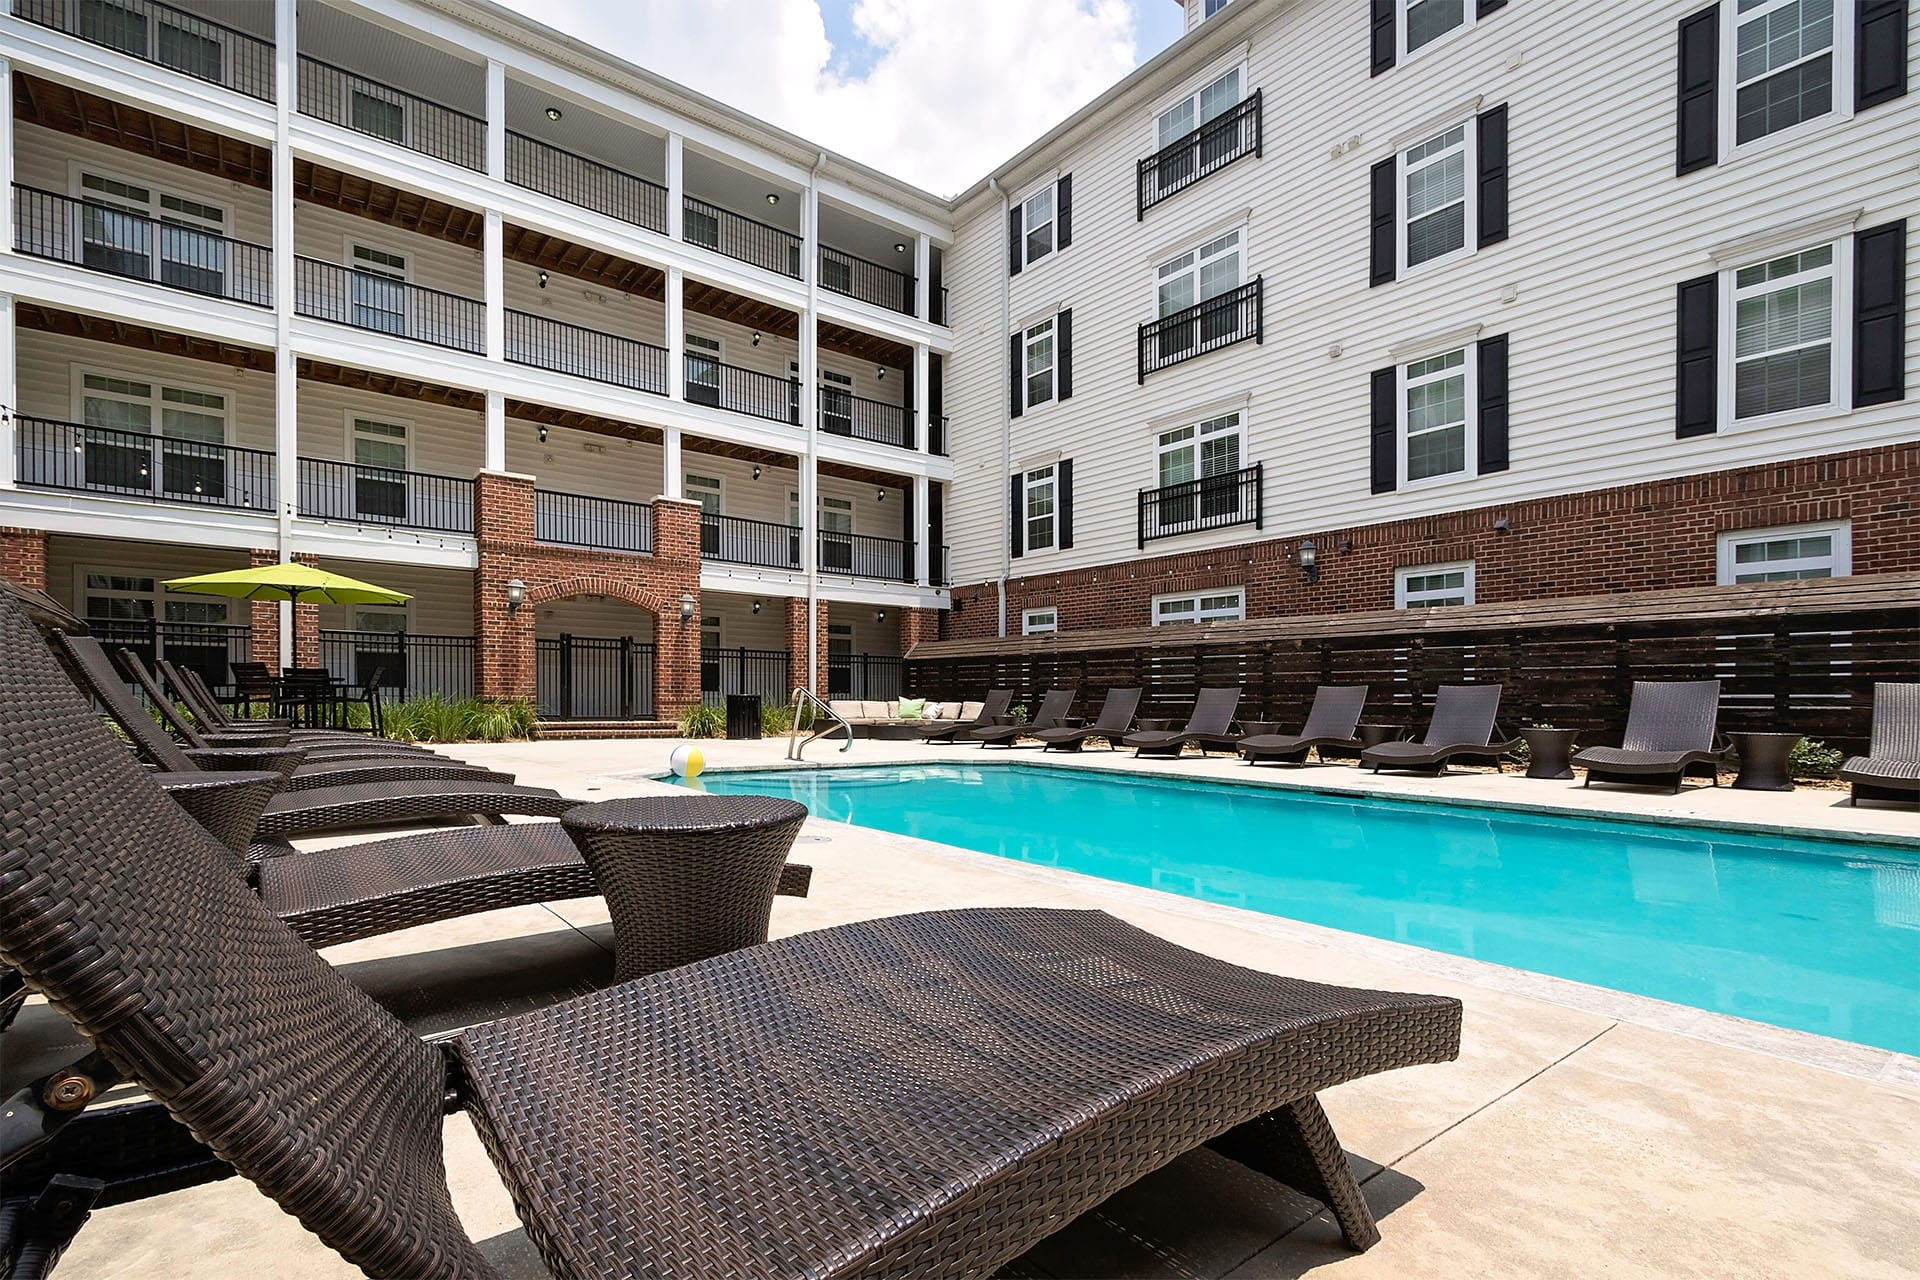 Student Apartments Near LSU Baton Rouge